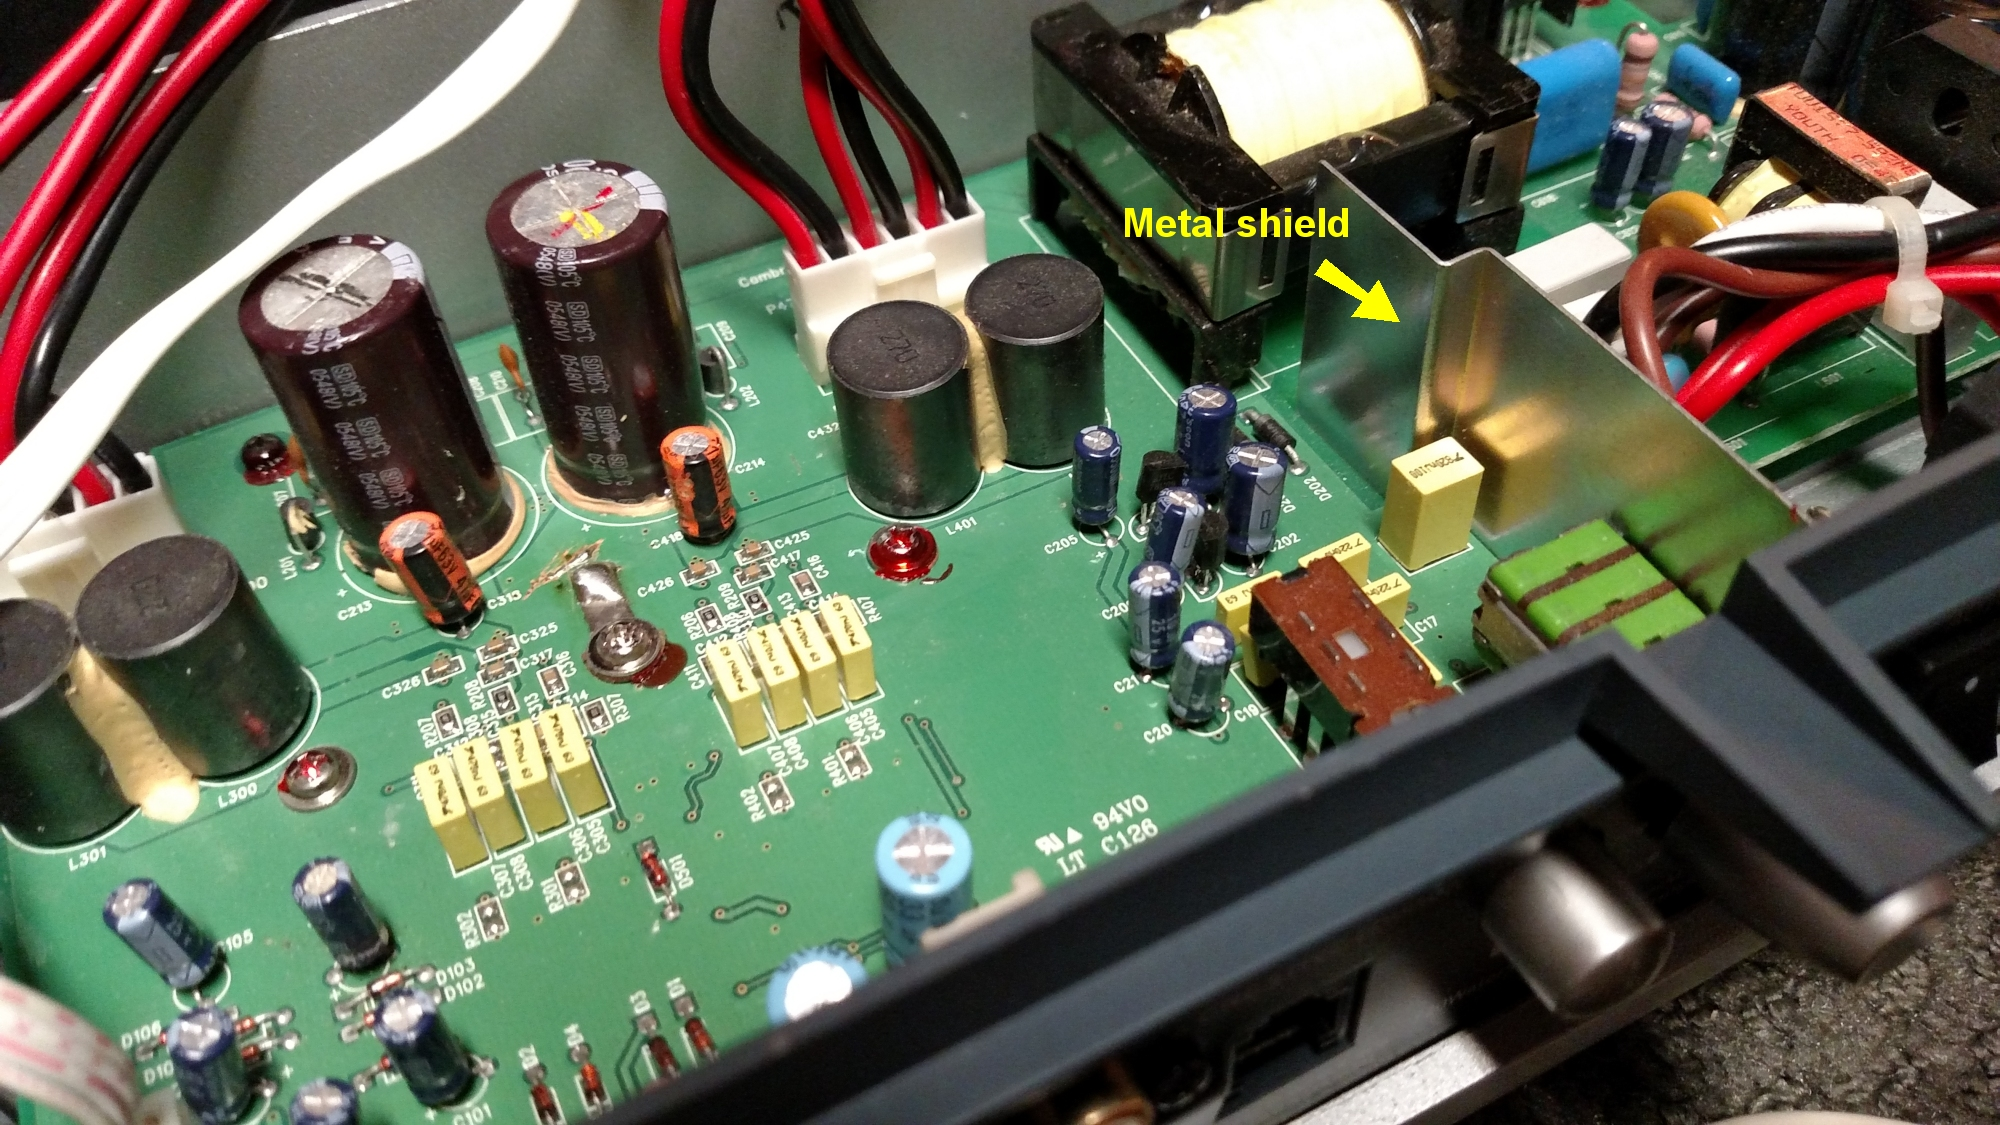 PS300HD Amp Metal Shield